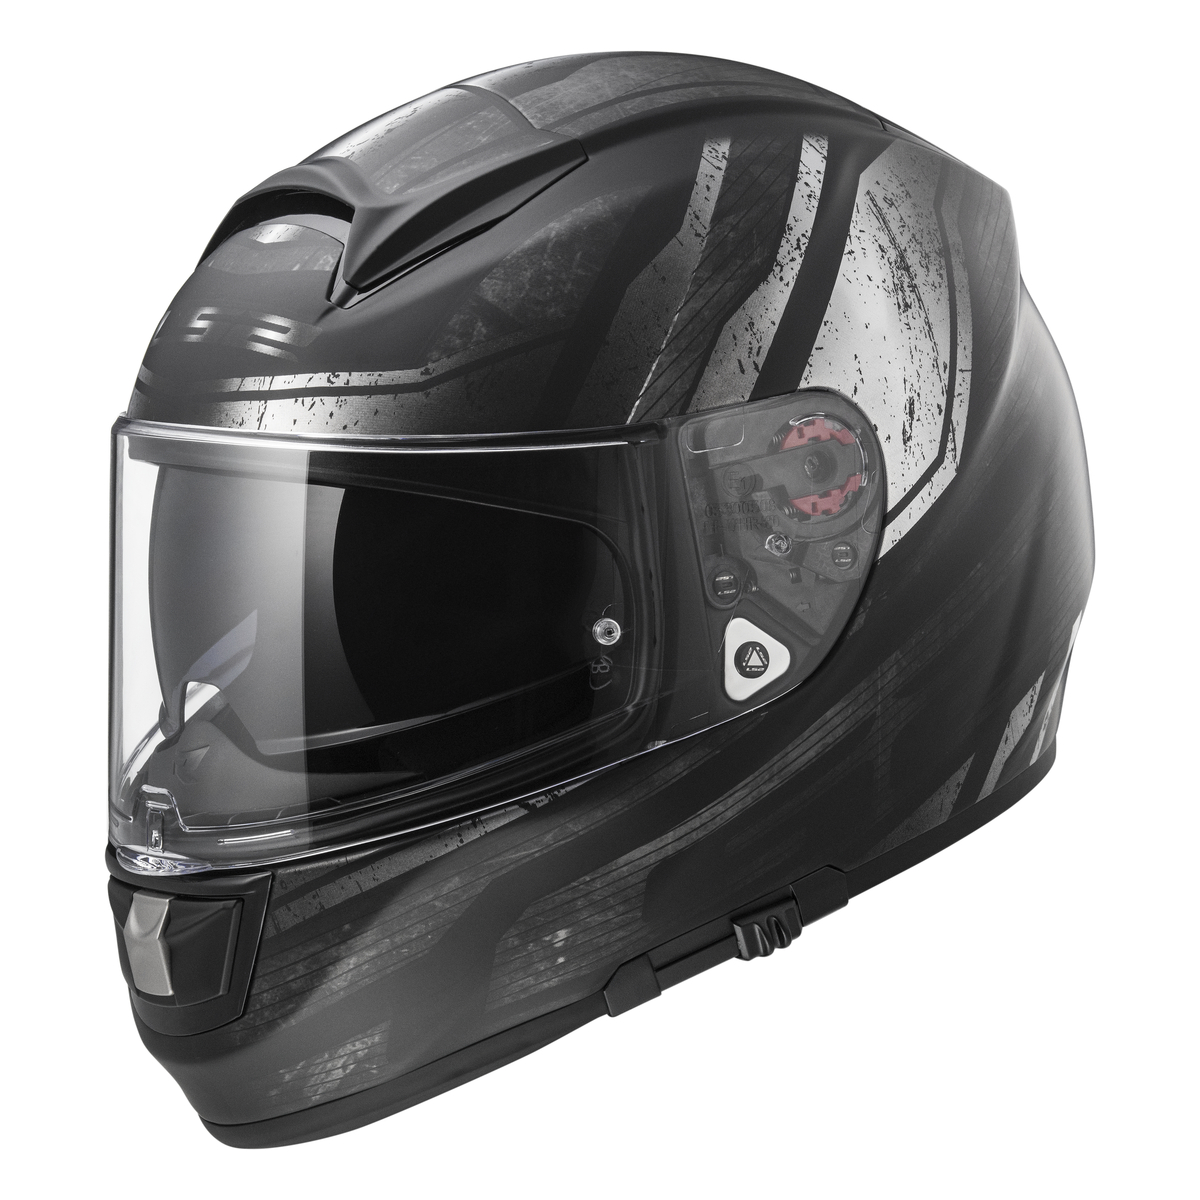 Citation Razor Helmet